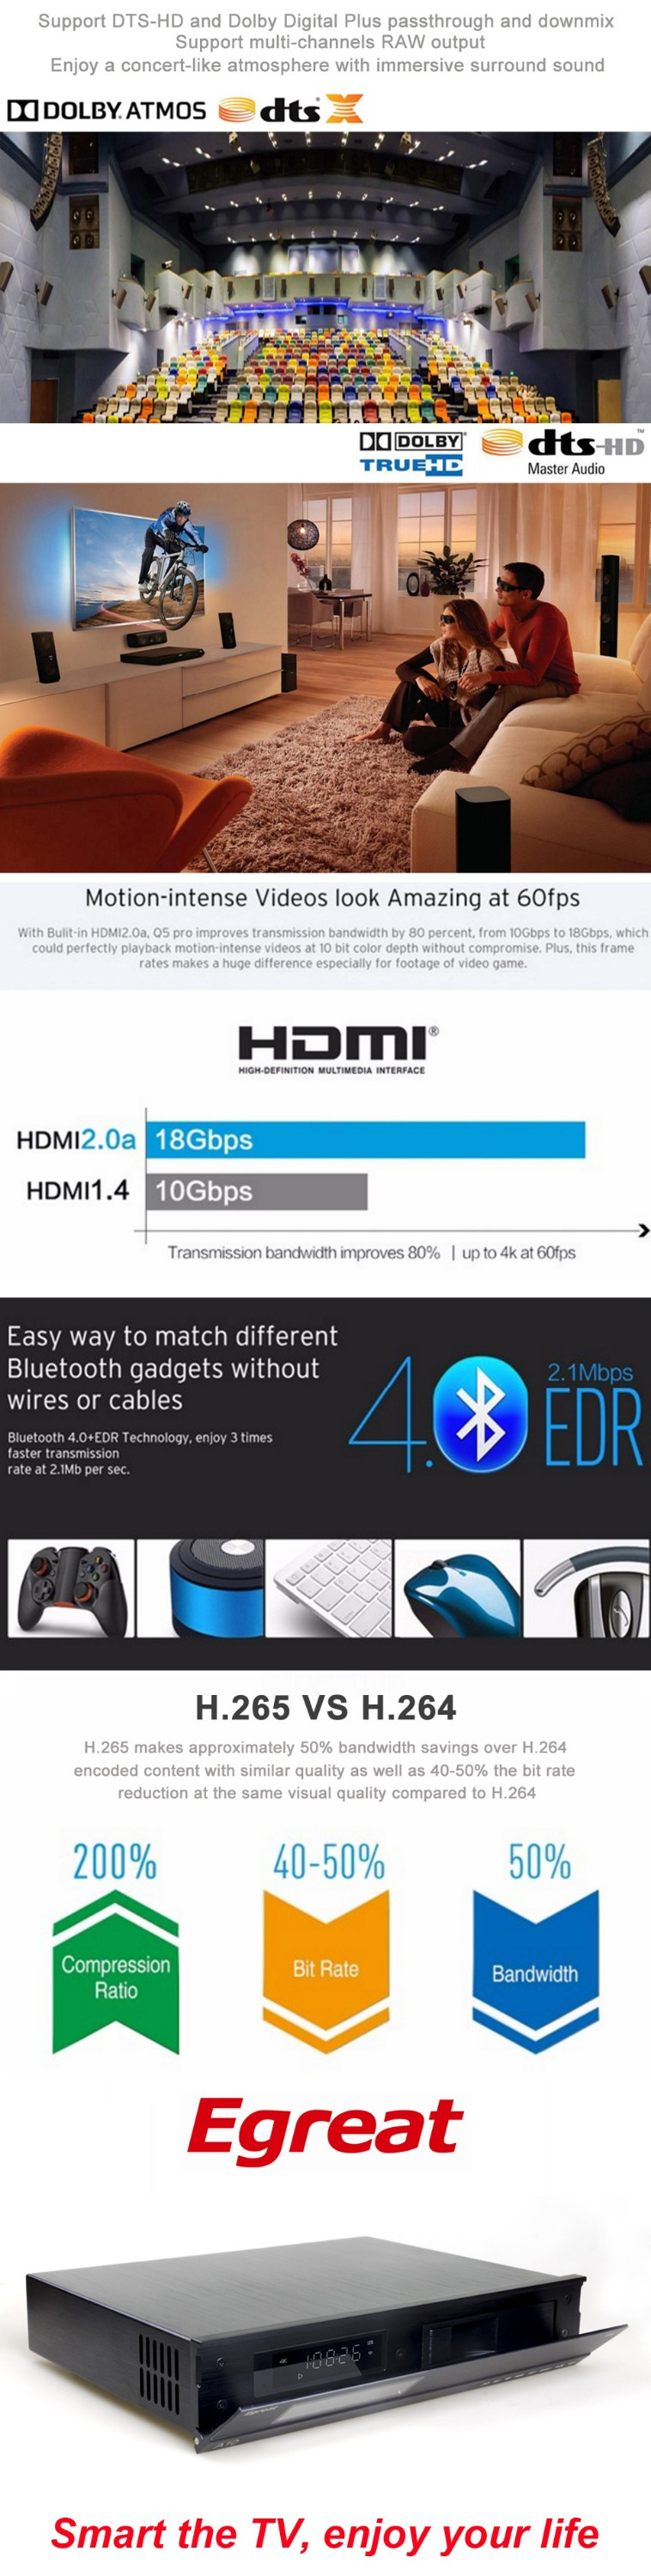 Home theater 4K UHD Egreat A10 blu-ray free download movie media player  HDR10 10Bit Deep Color with BD menu, View free download movie media player,